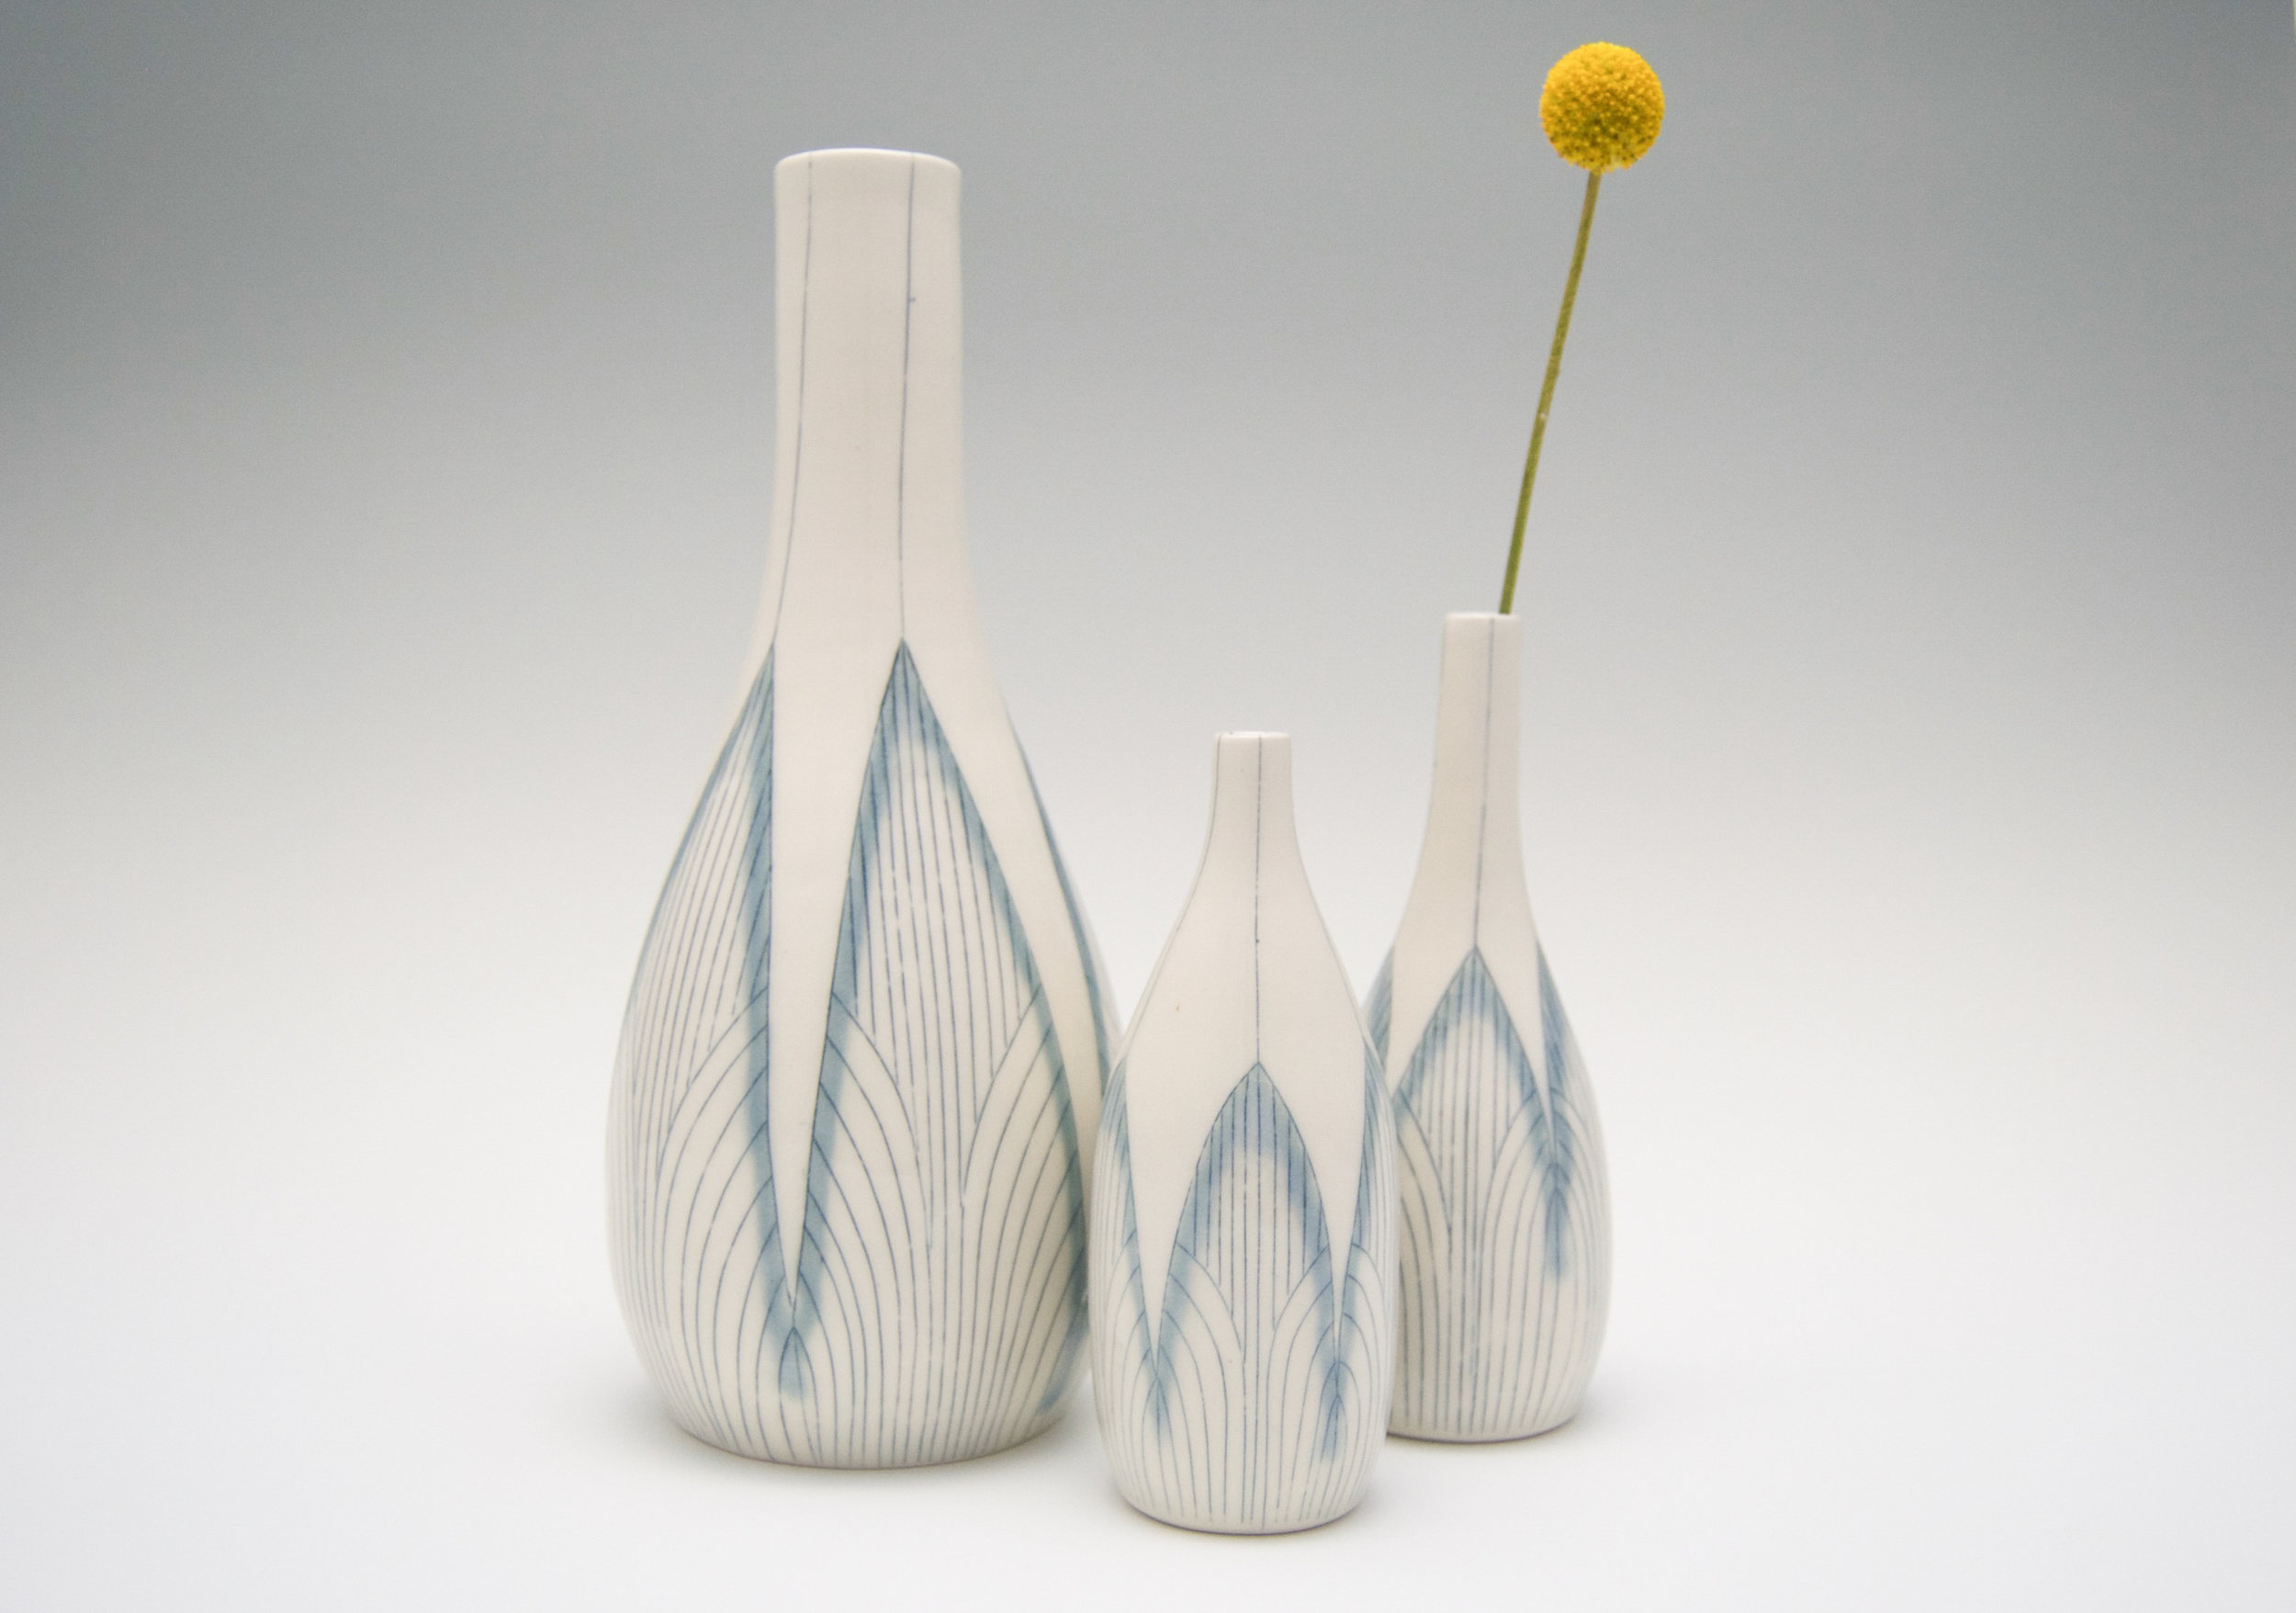 Architectural Cluster Vases